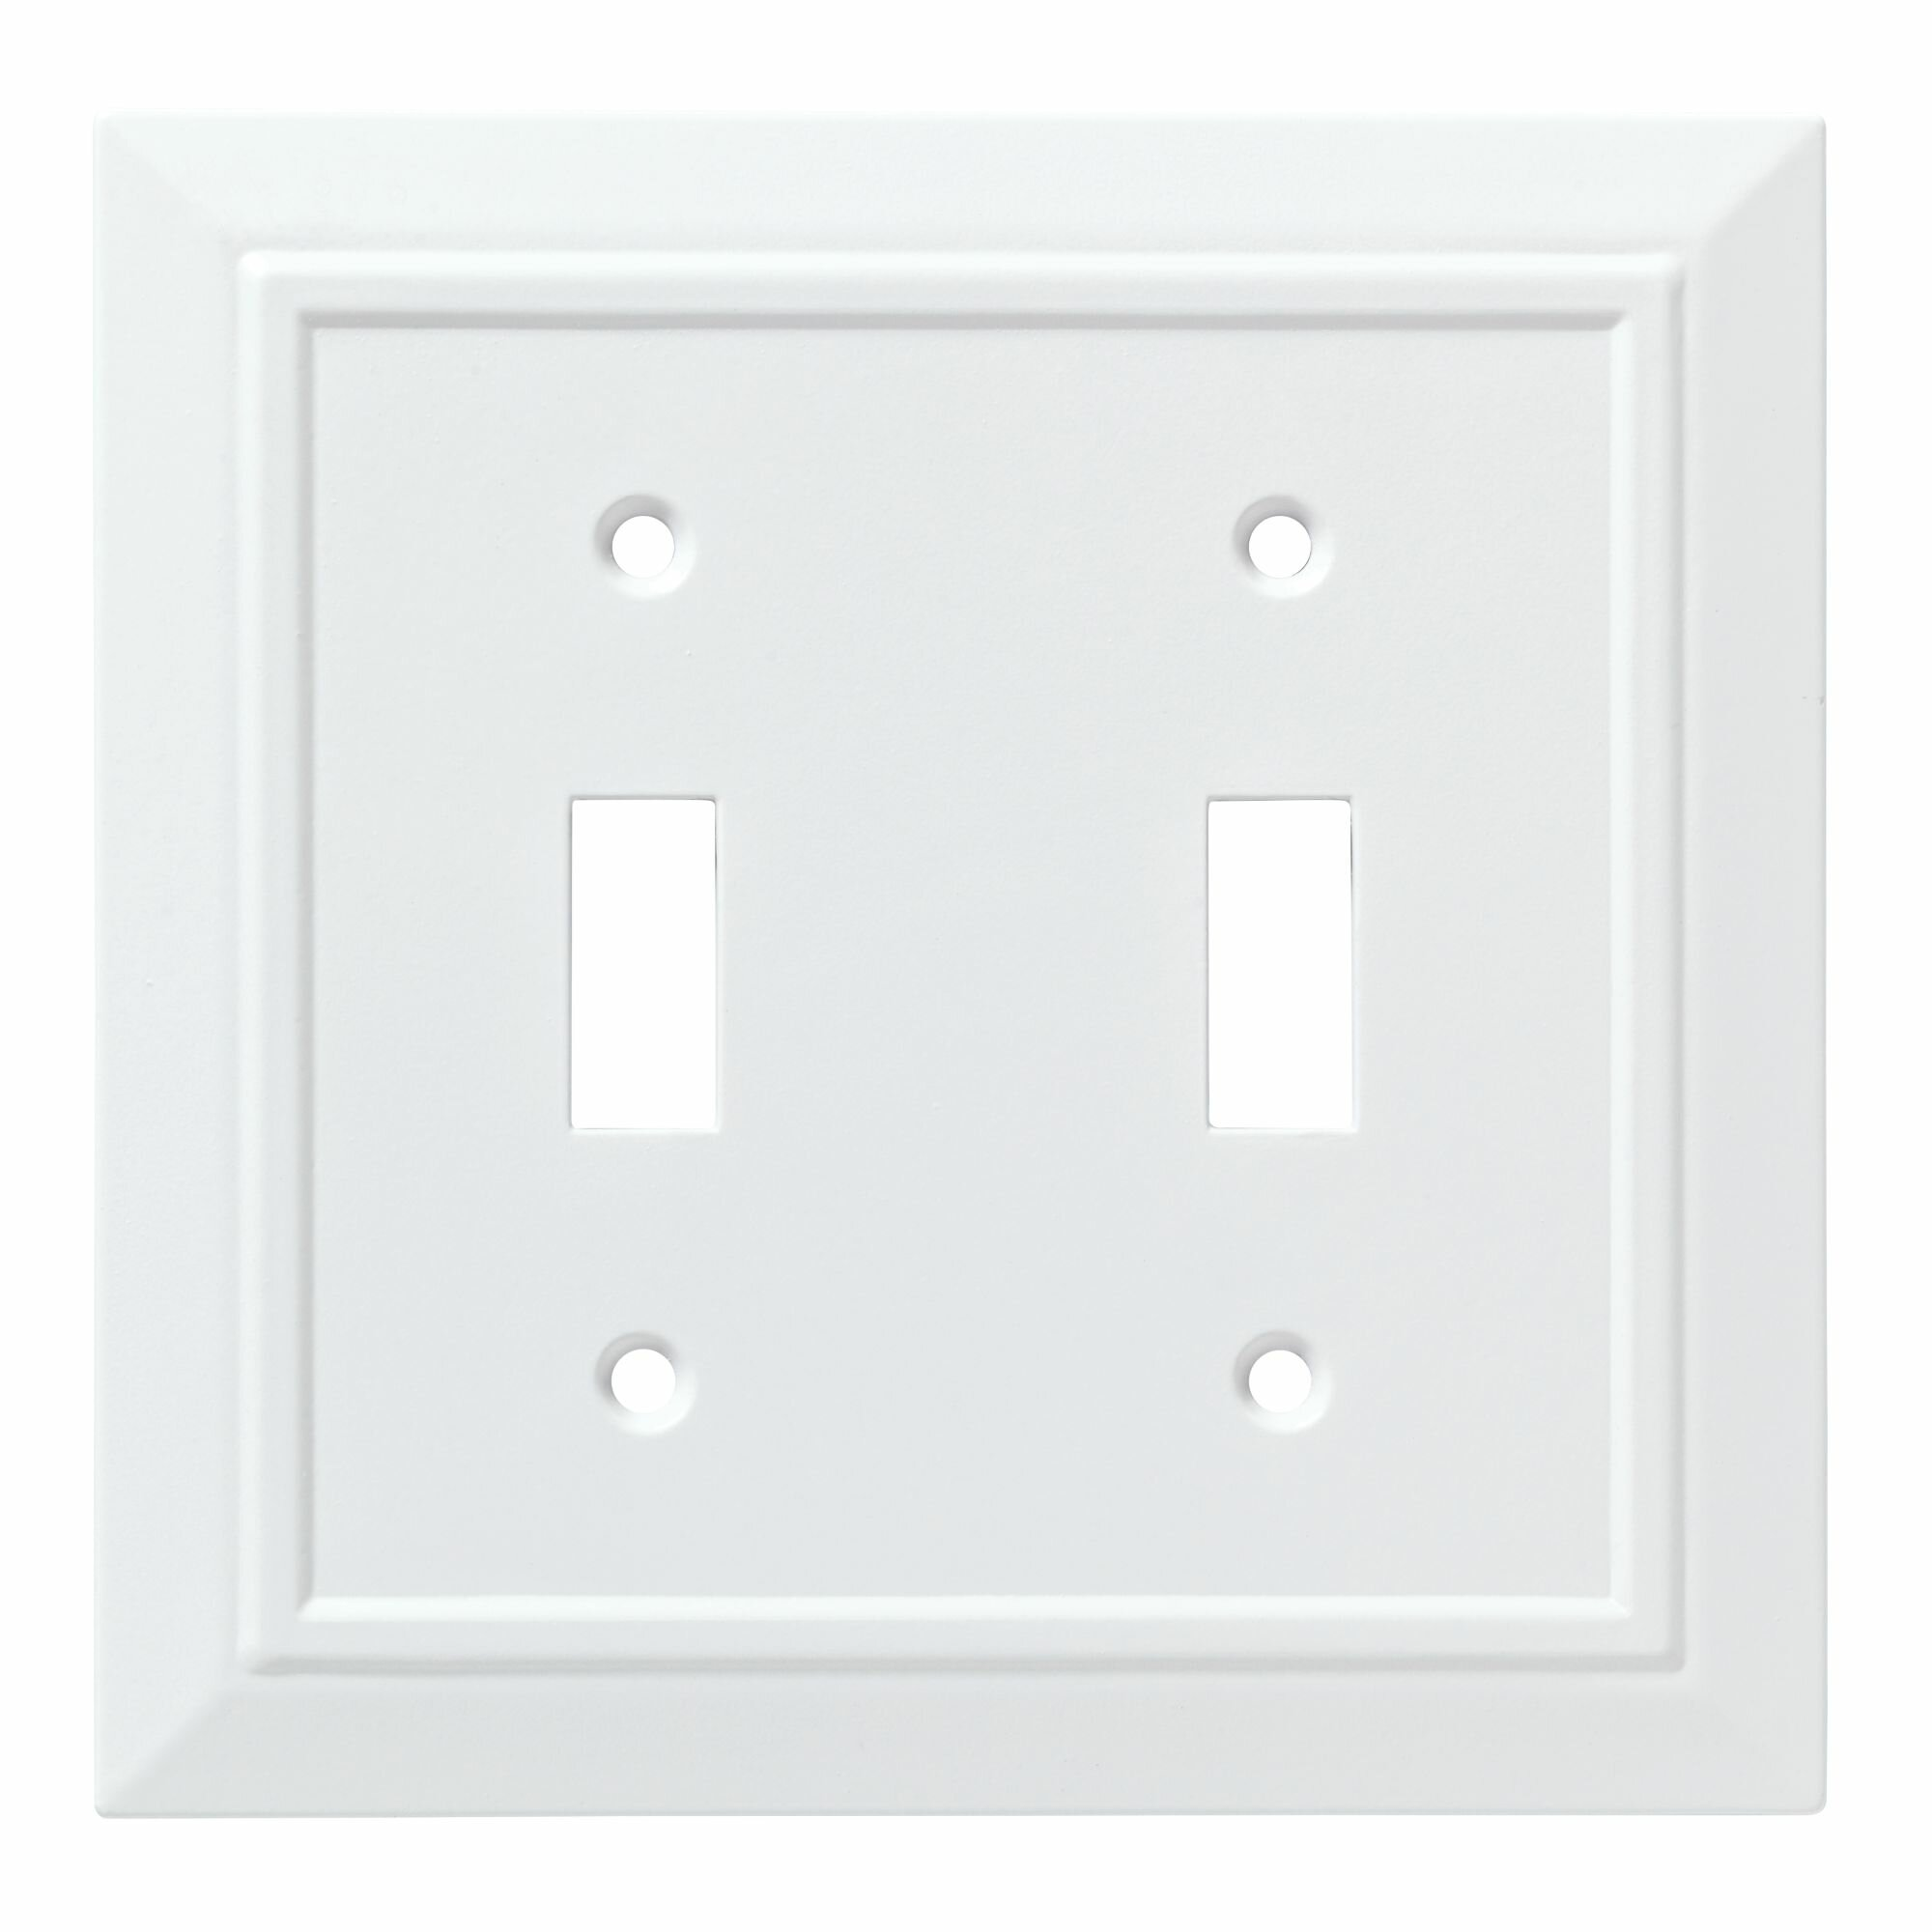 Franklin Brass Classic Architecture Double Switch Wall Plate